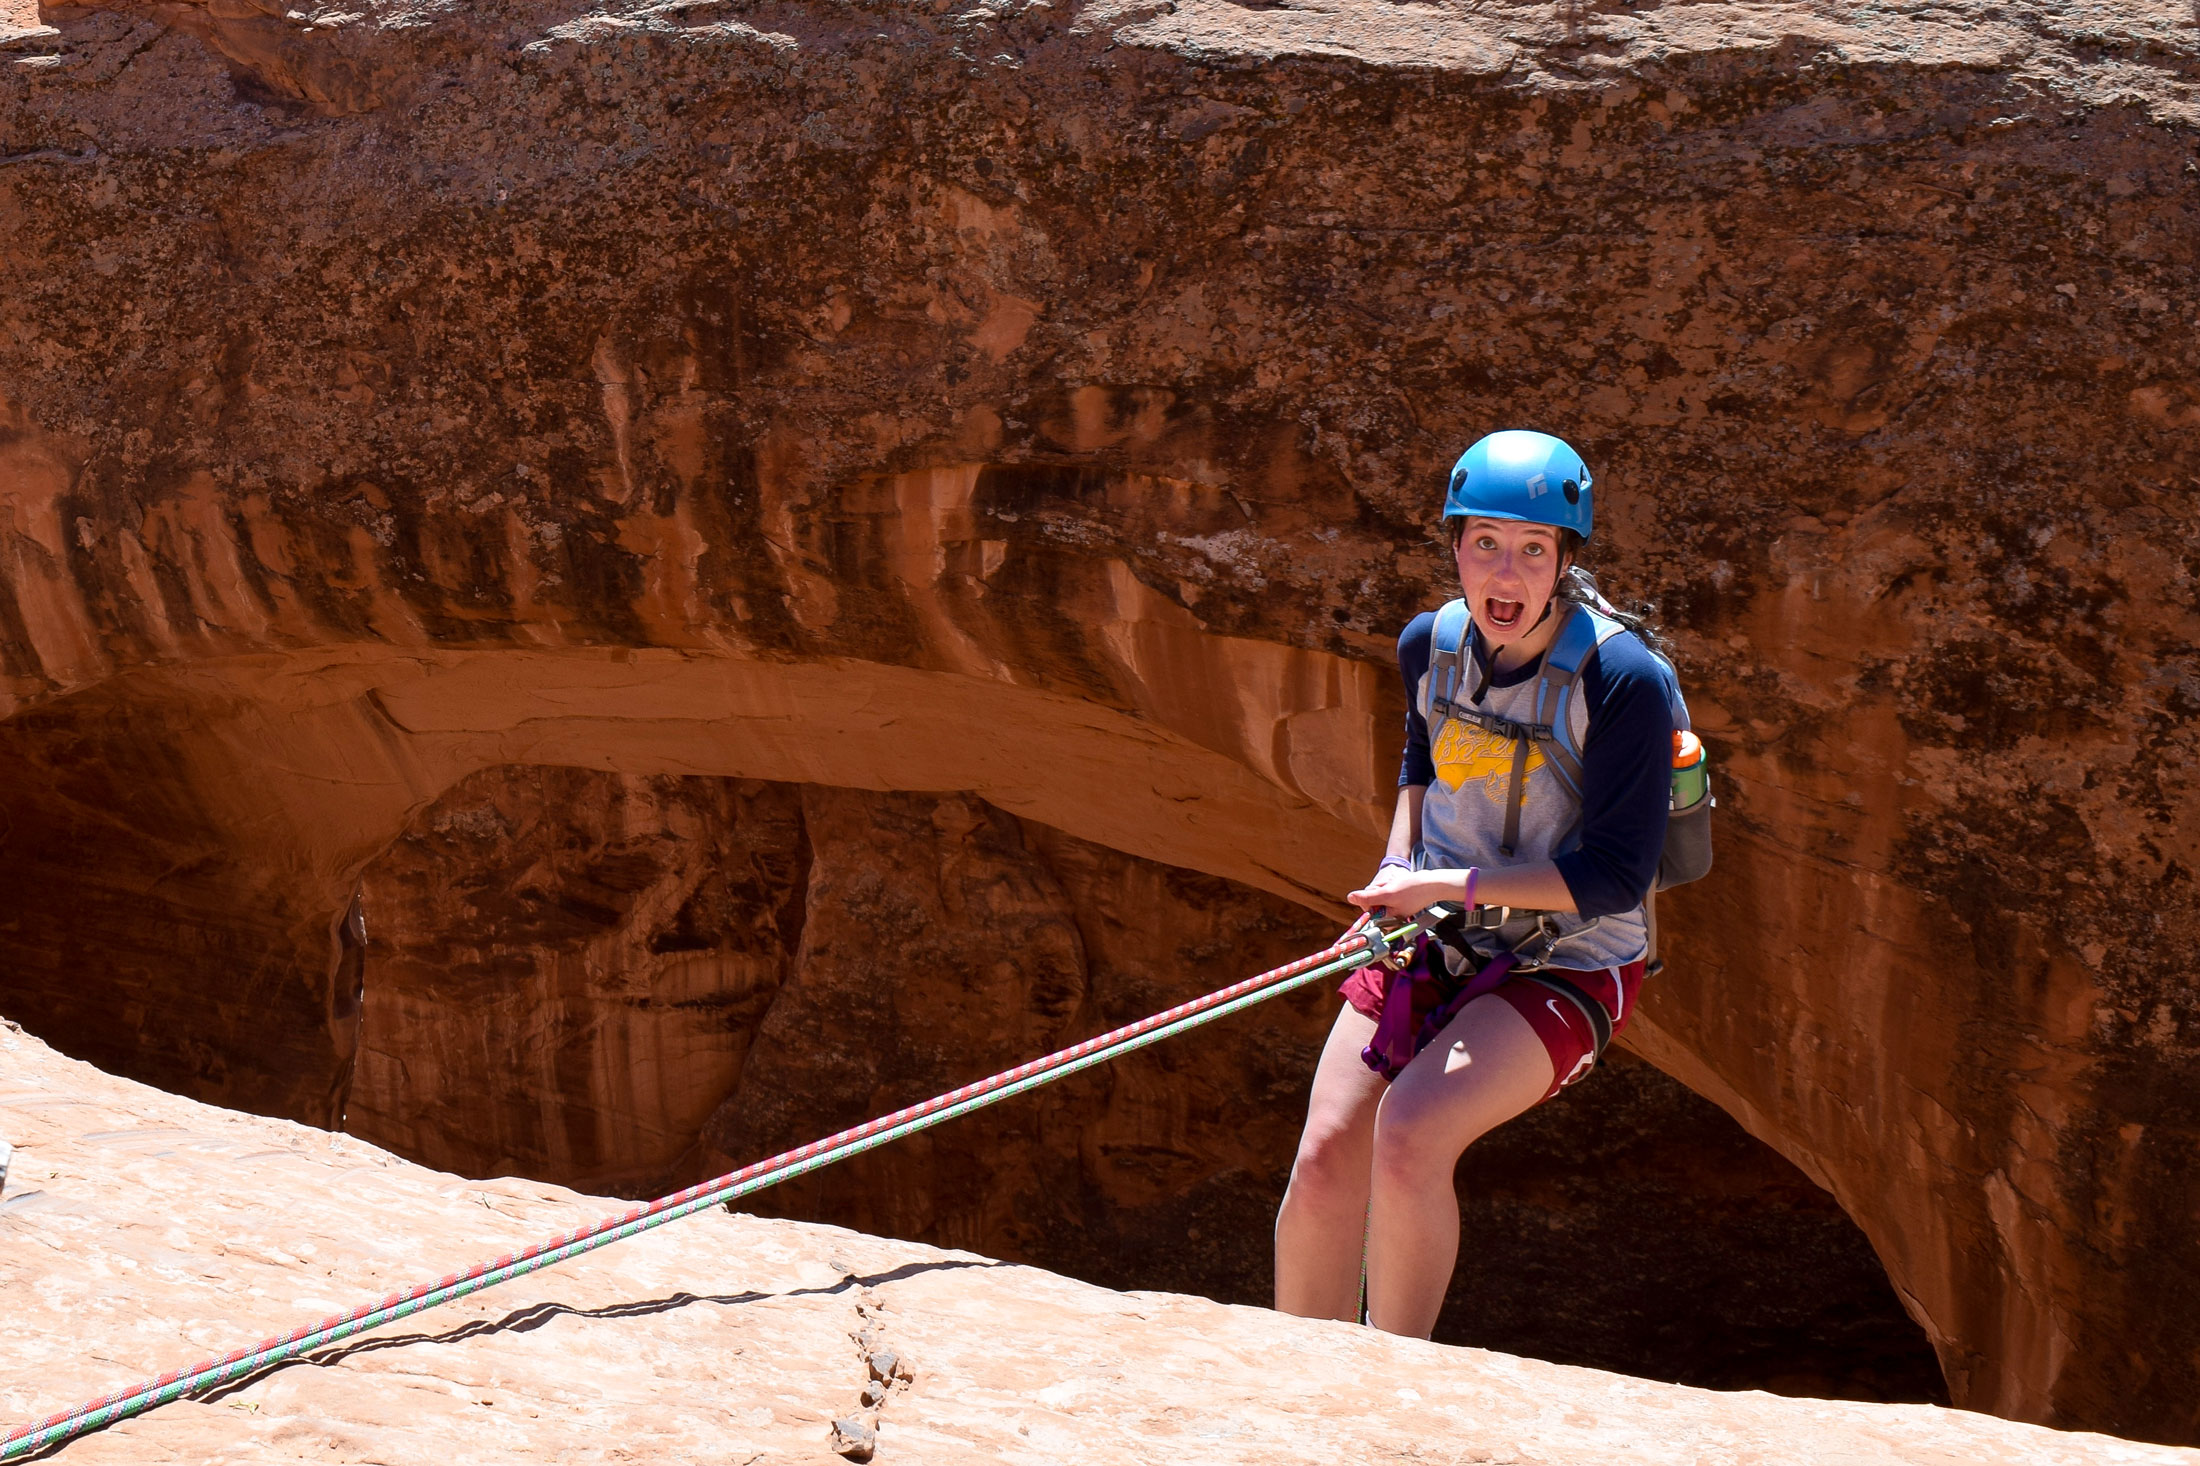 Elle Barta repelling down a large rock in the desert